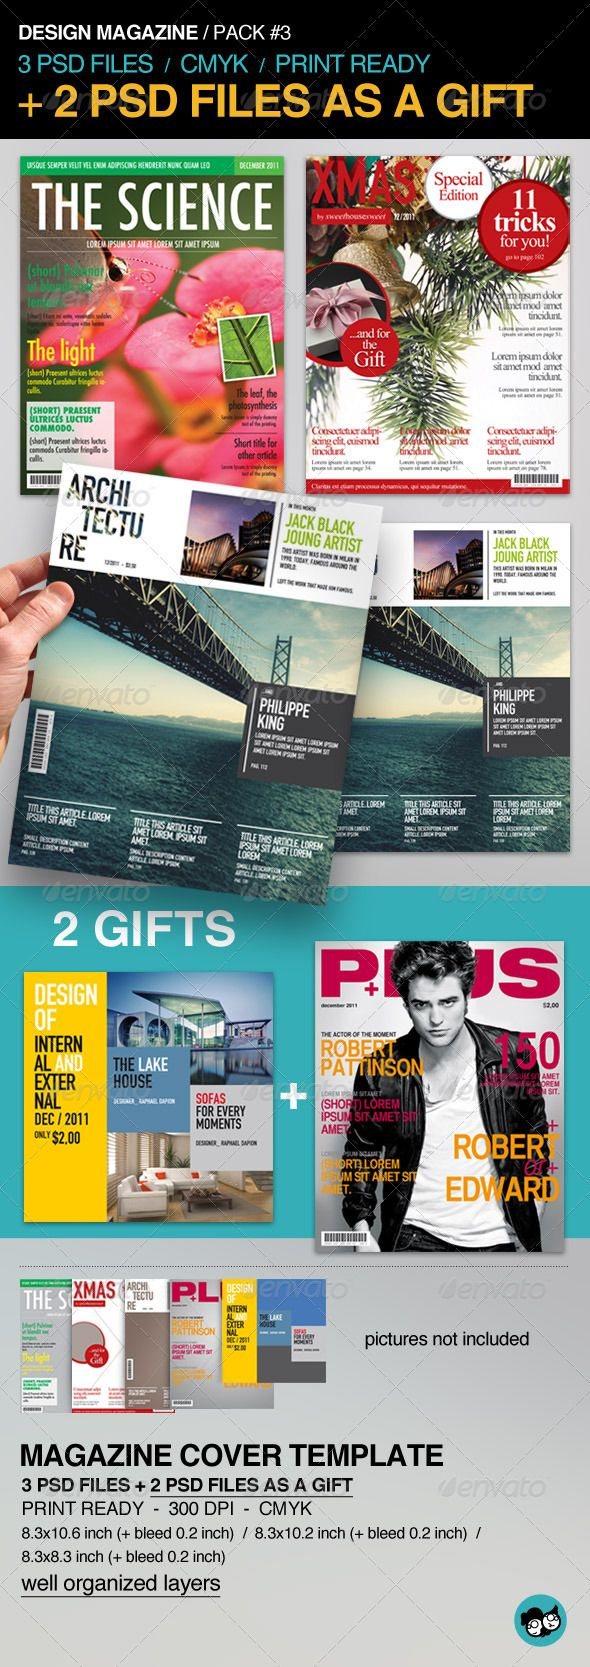 magazine covers templates free